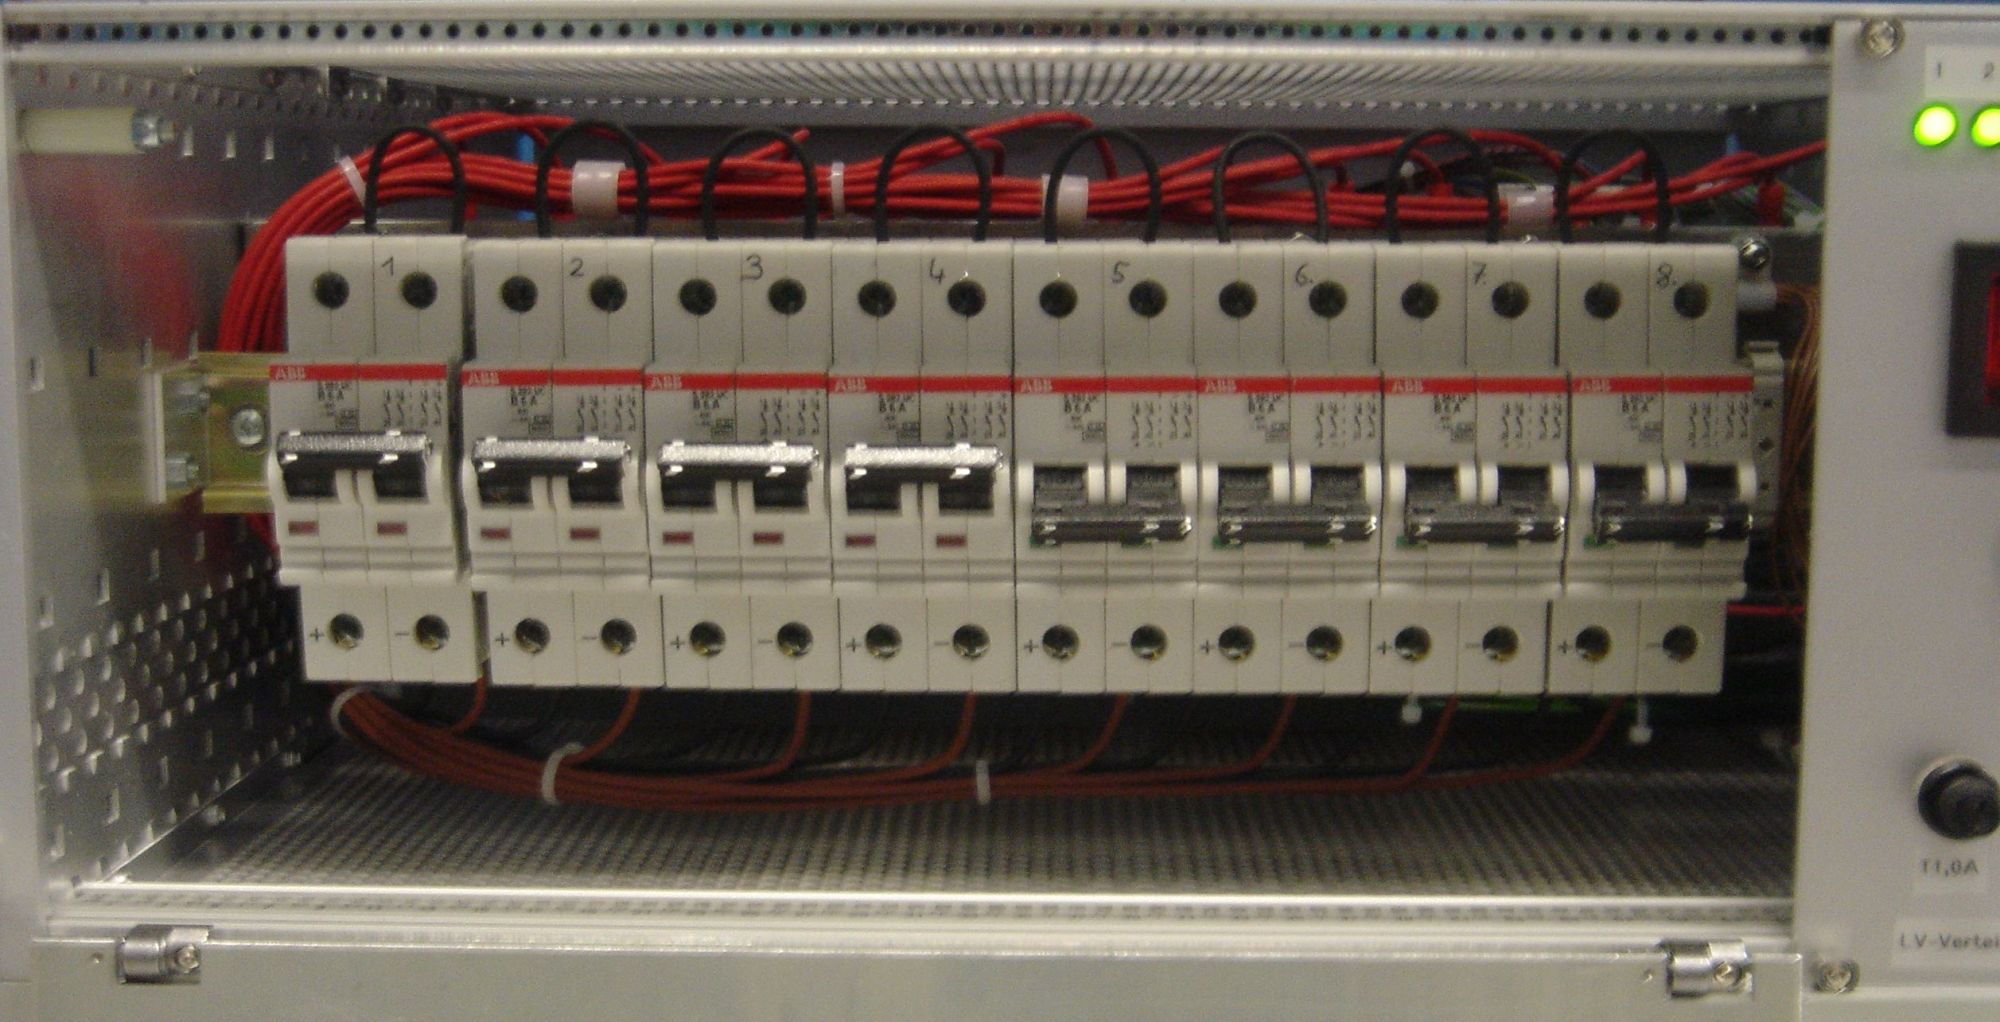 hight resolution of after you switched on the fuse please close the front panel tighten the screws and turn the key left